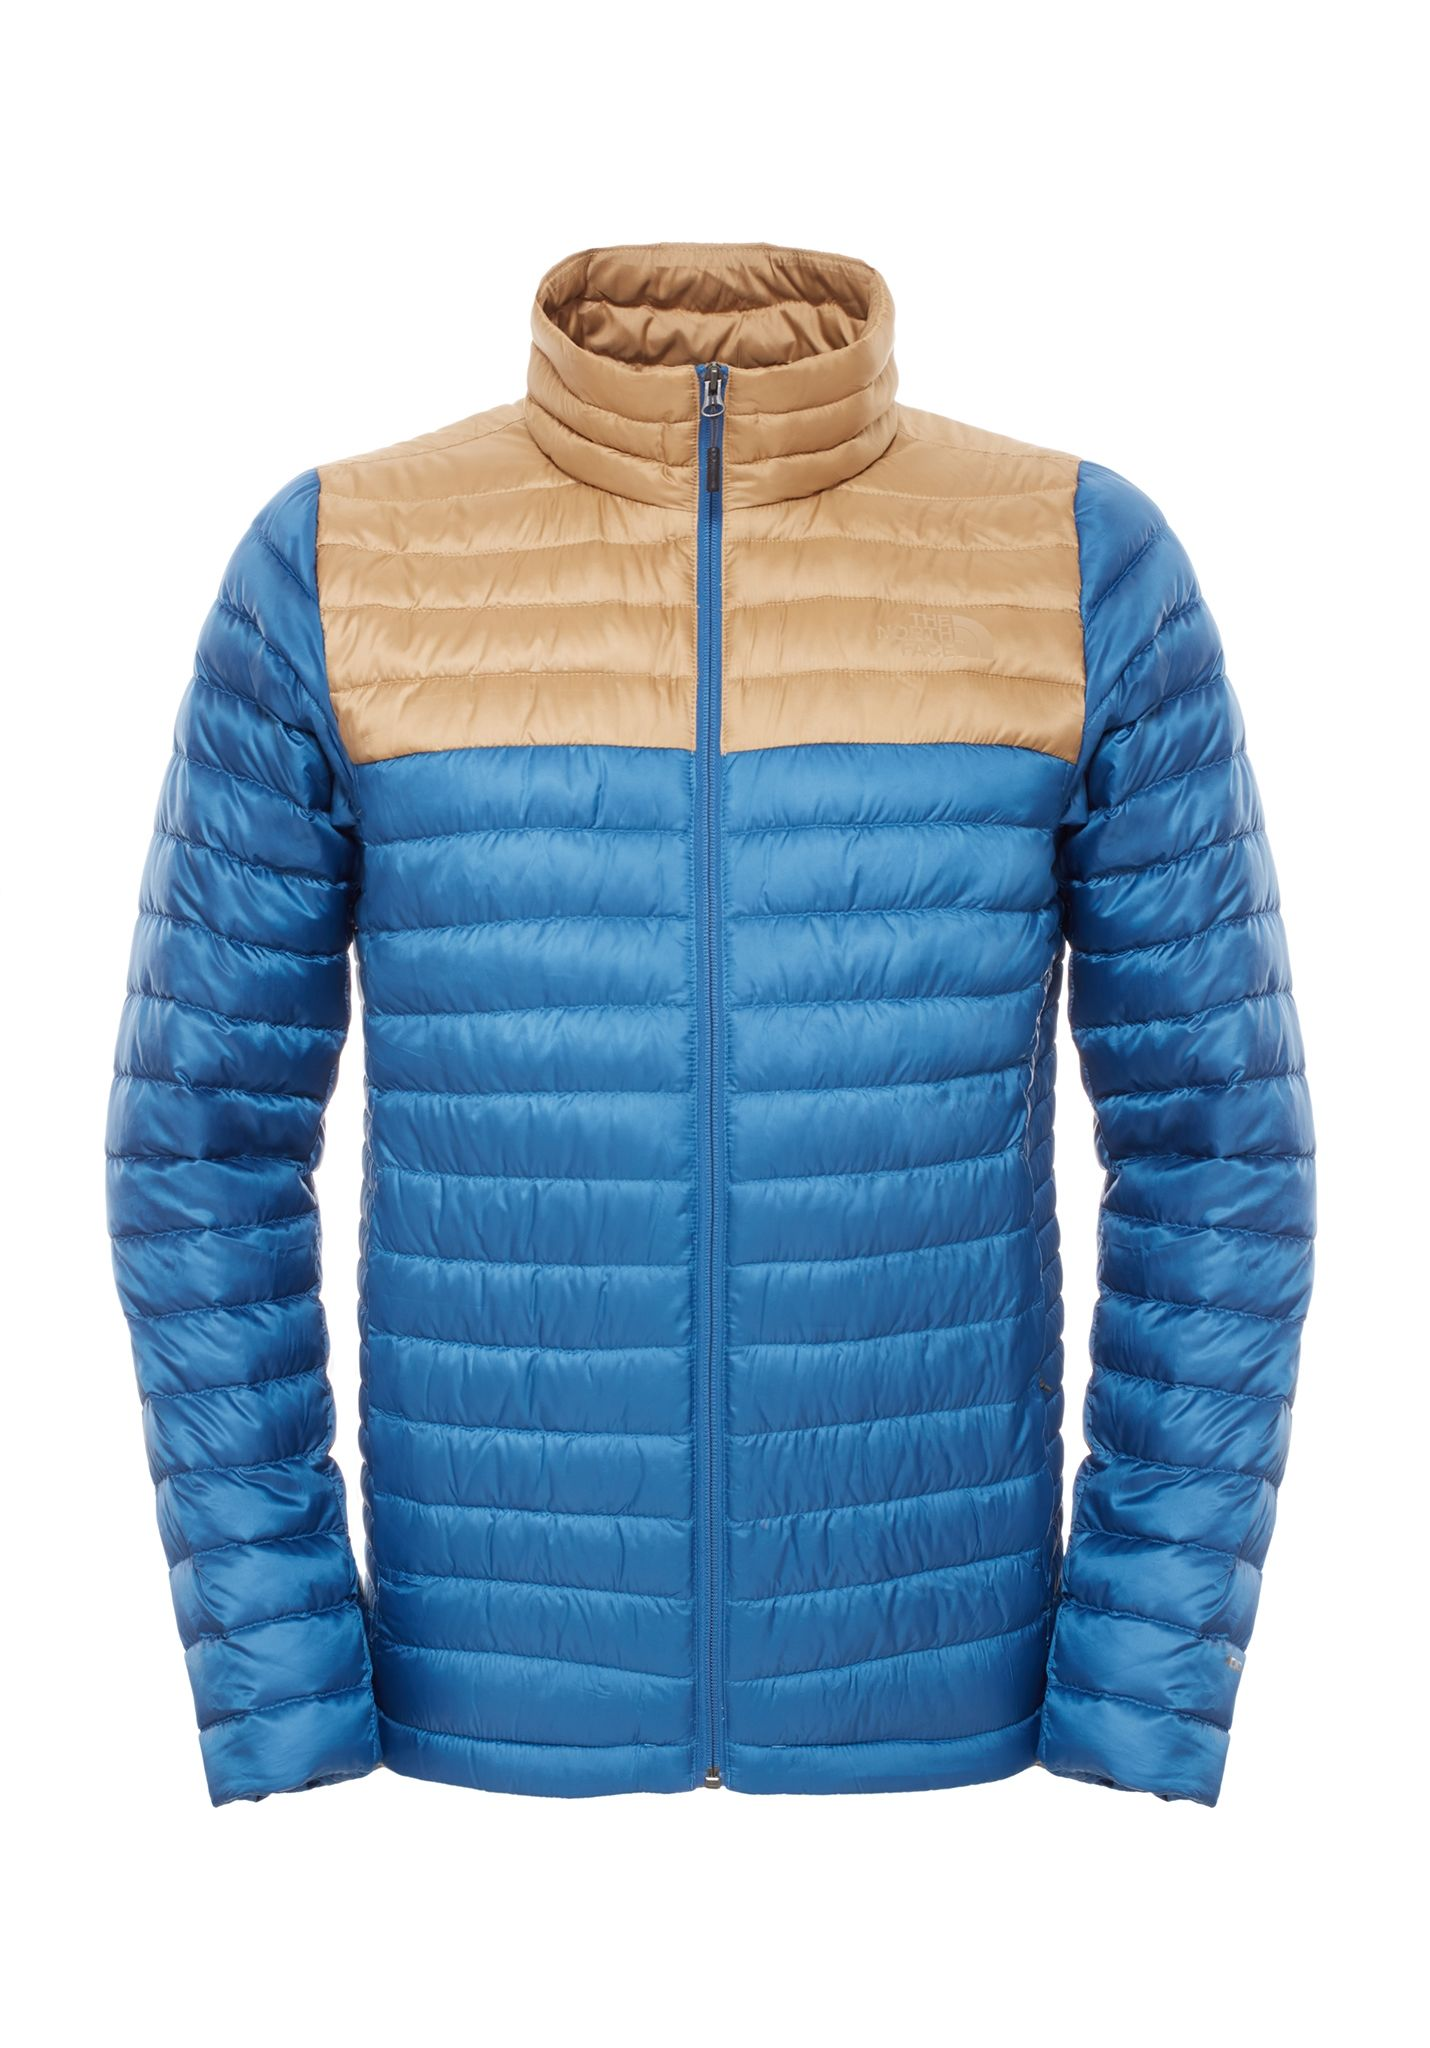 THE NORTH FACE Tonnerro - Functional Jacket for Men - Blue - Planet Sports 31d163dc0